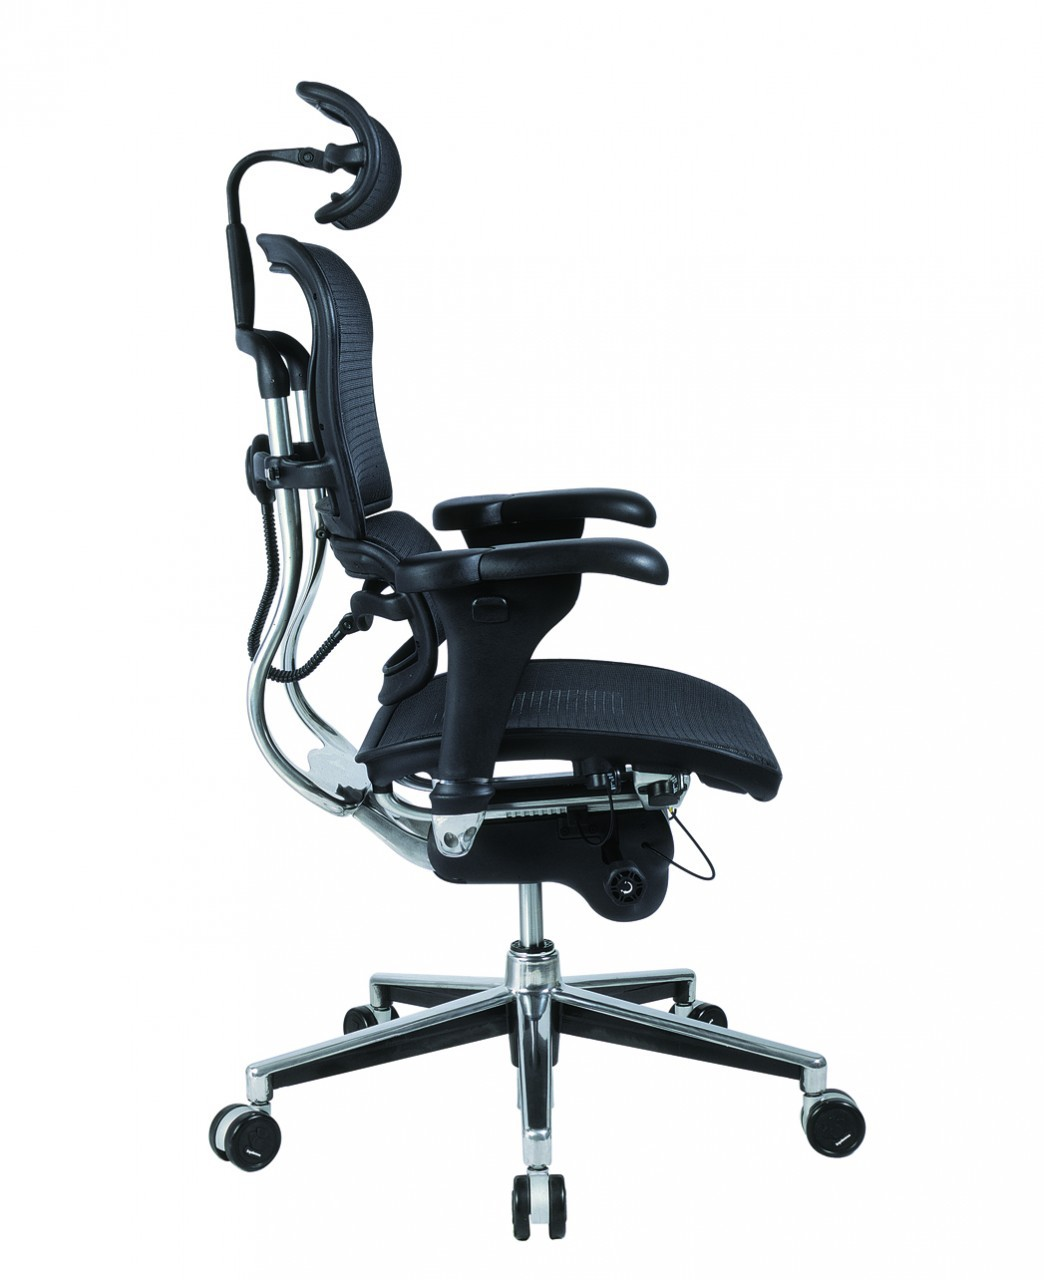 chair lumbar support cost plus folding chairs 10 best pc gaming in 2015 gamers decide